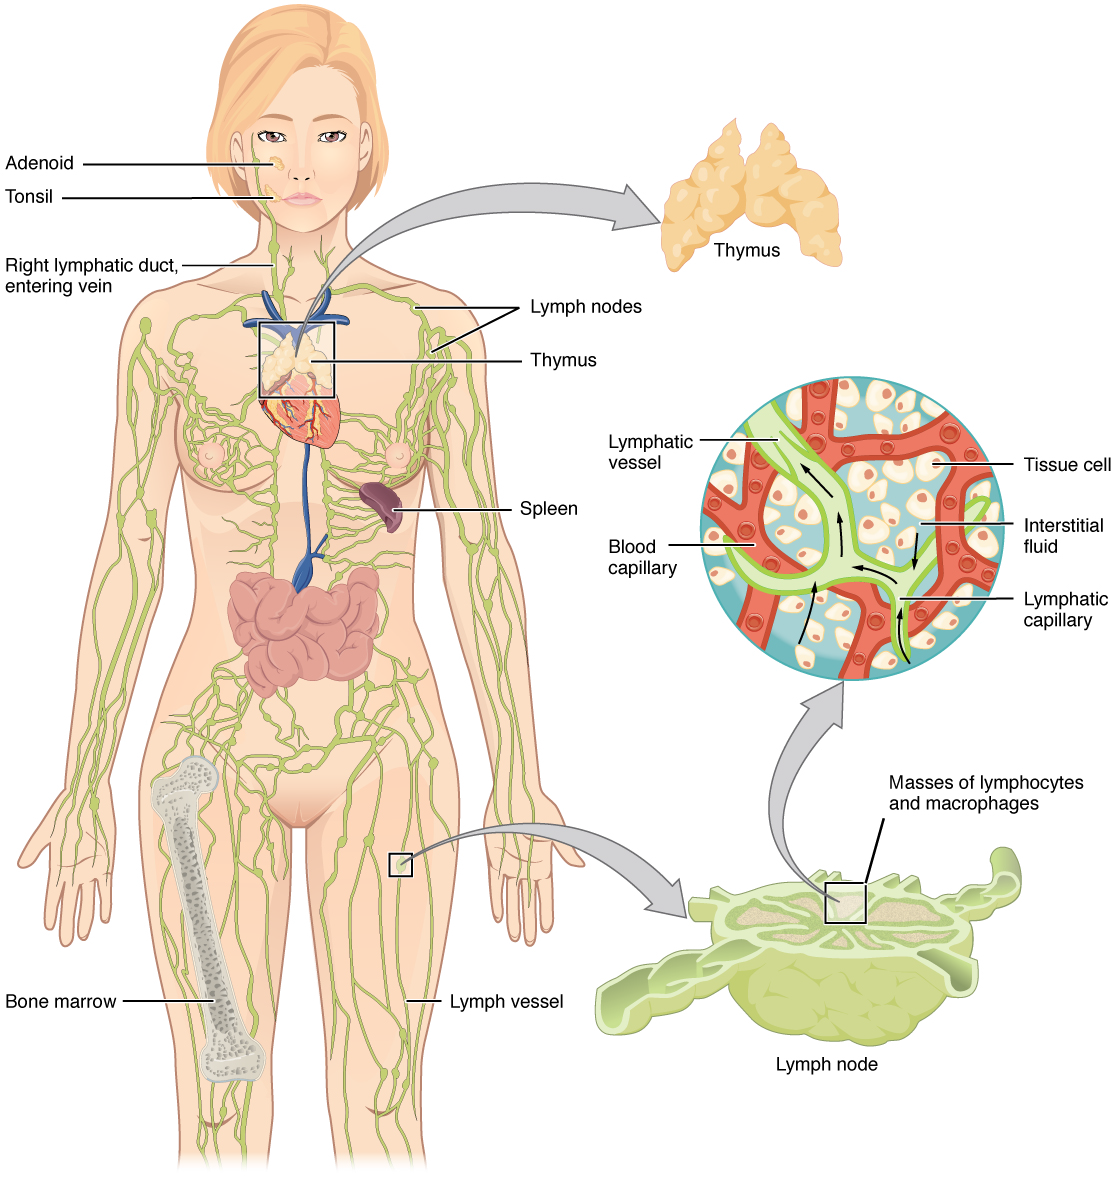 Openstax Anatomy And Physiology Ch 21 The Lymphatic And Immune